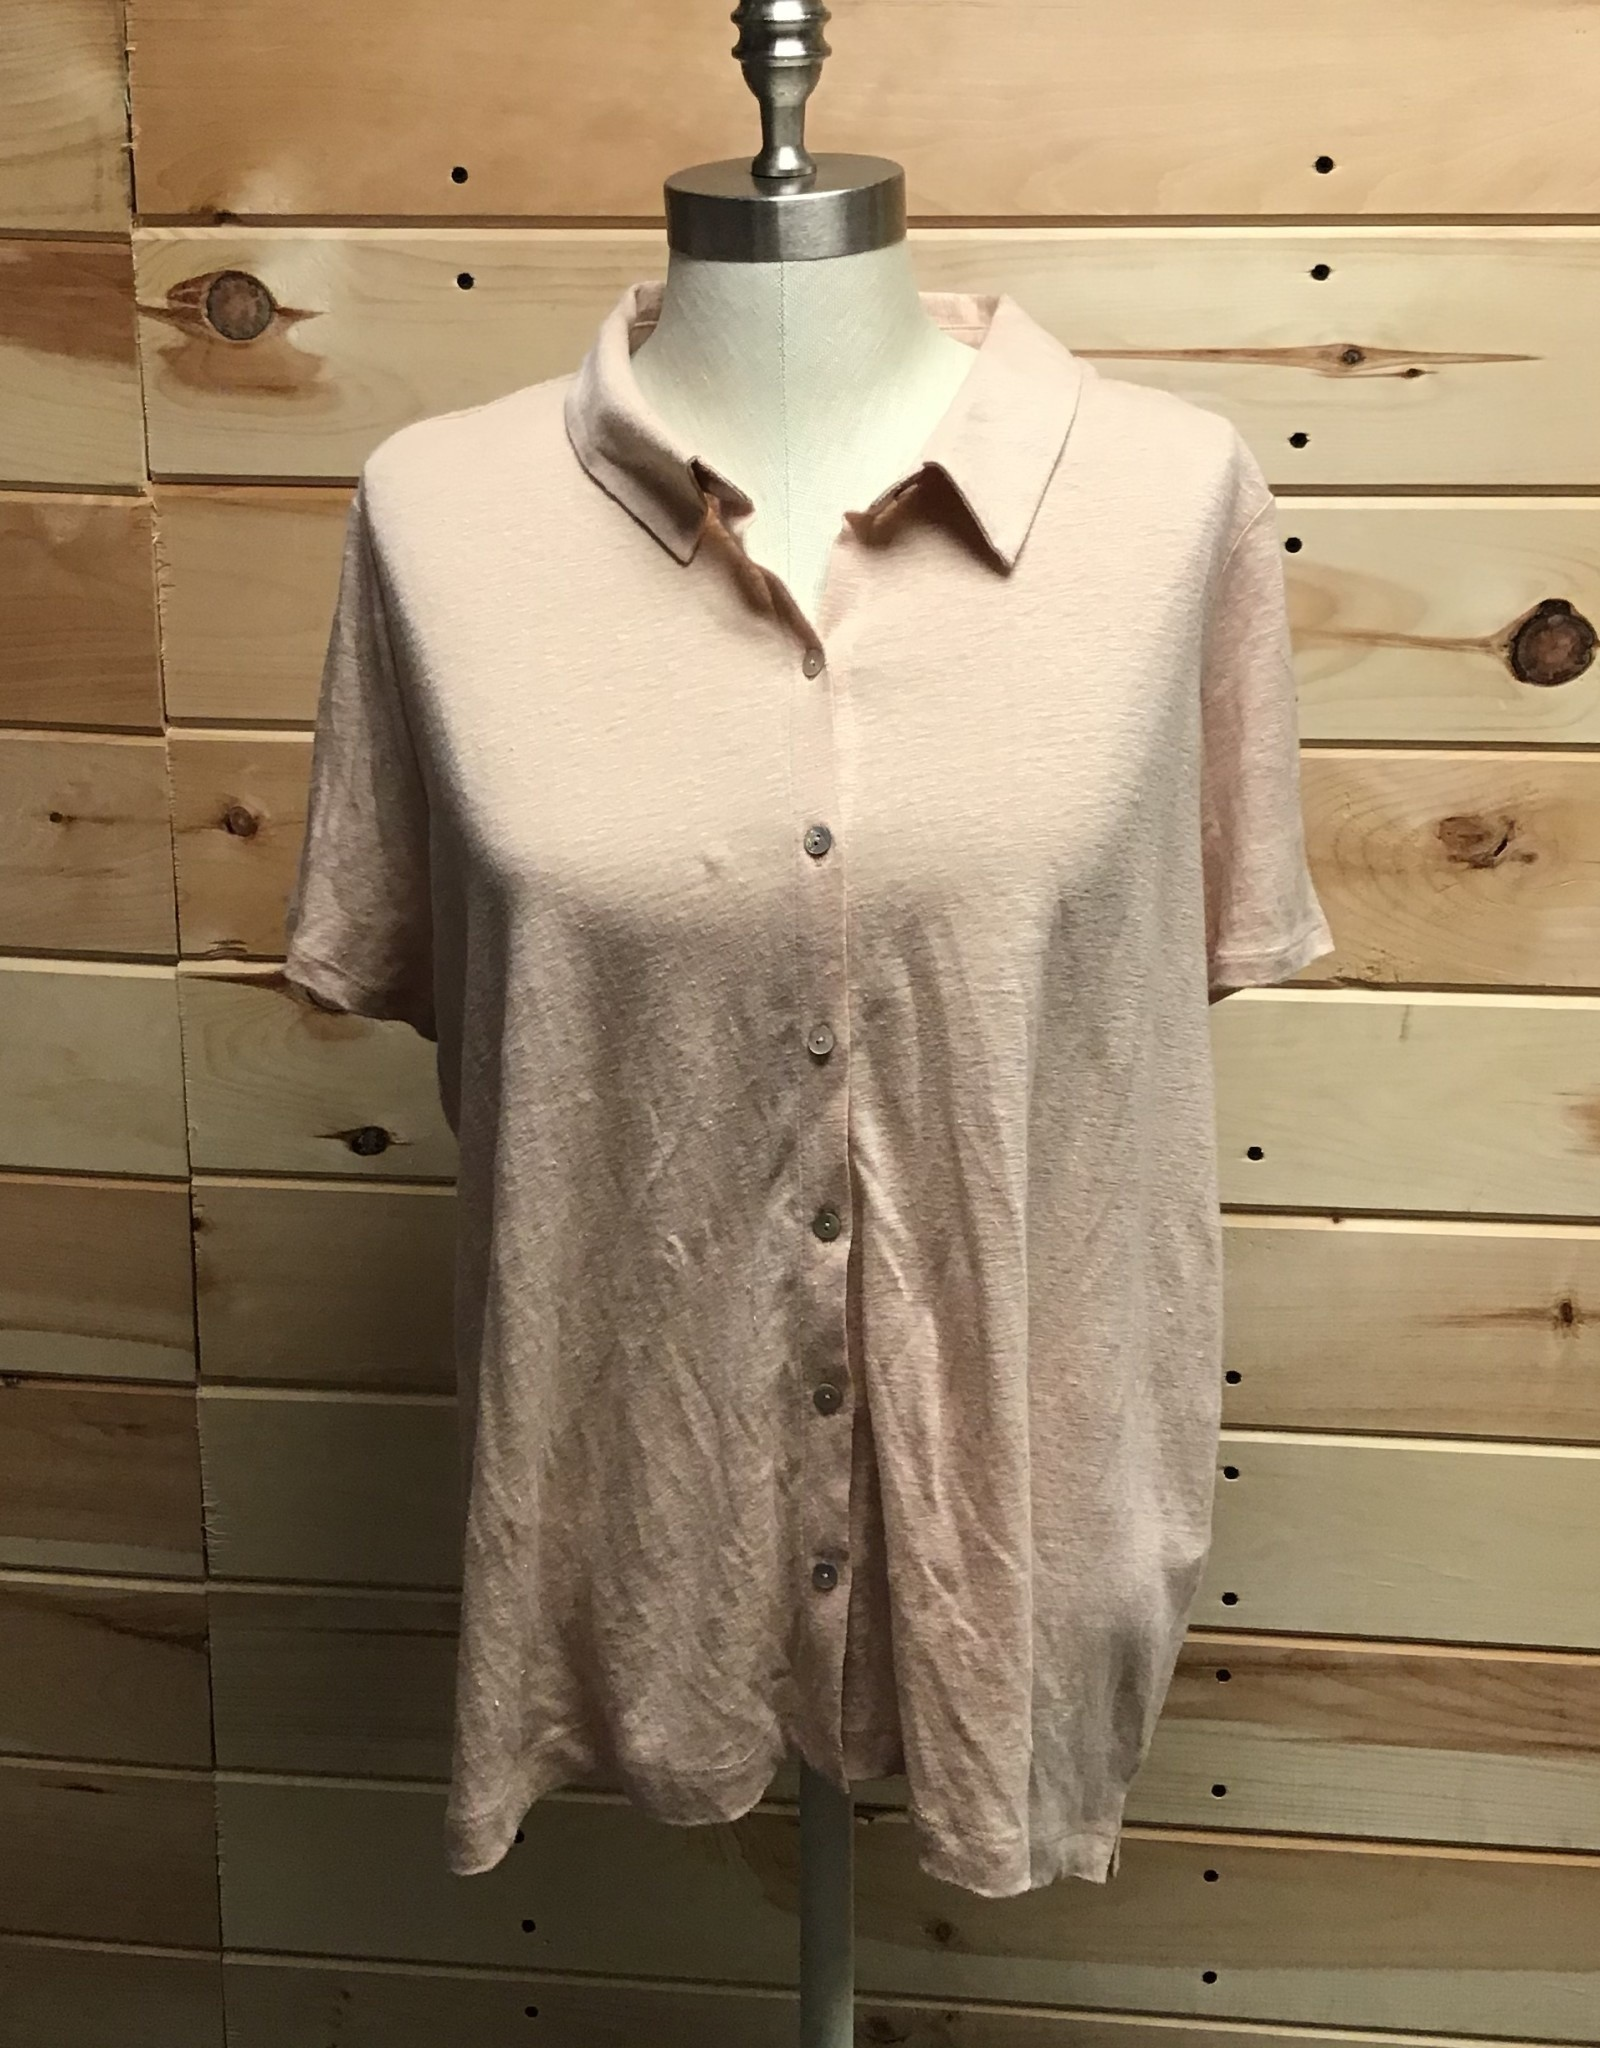 Eileen Fisher Eileen Fisher S/S Linen Button Up Top Beige Sz L